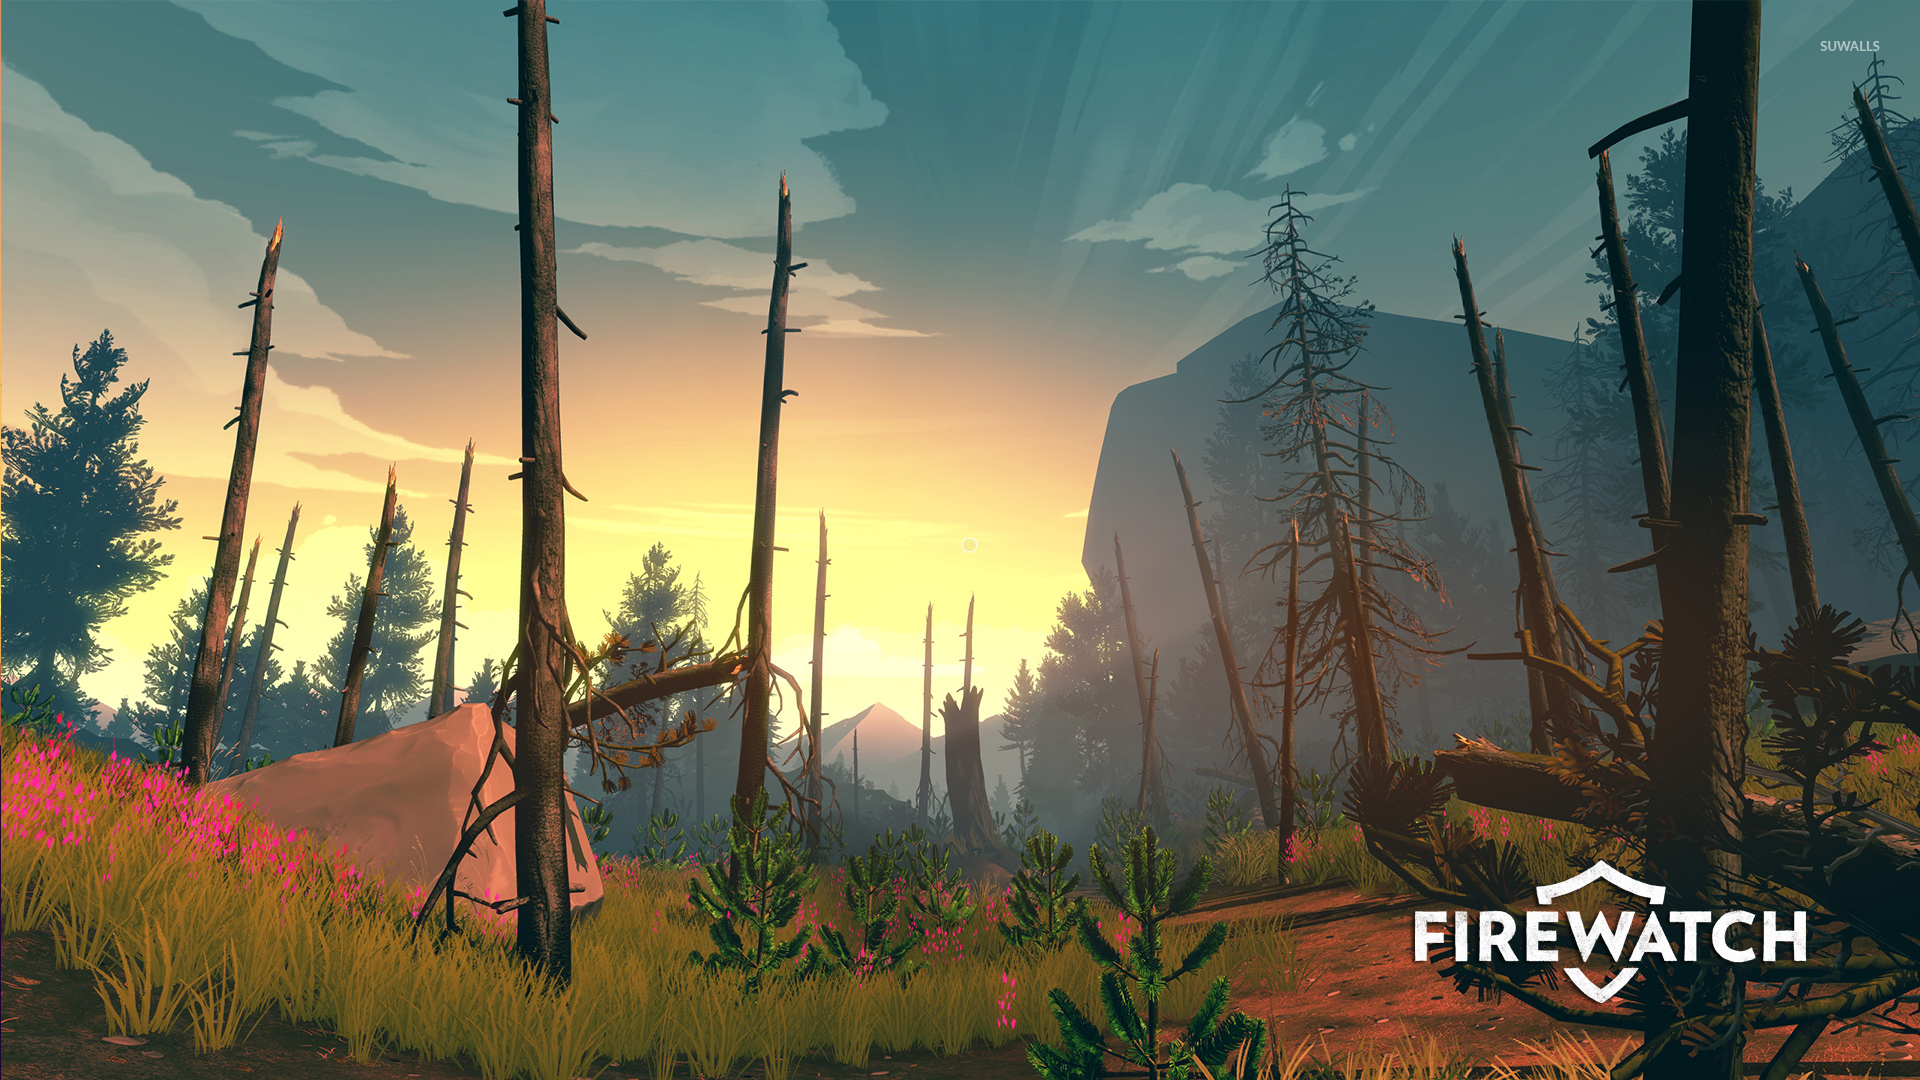 Star Wars Animated Wallpaper Burn Trees In Firewatch Wallpaper Game Wallpapers 49914